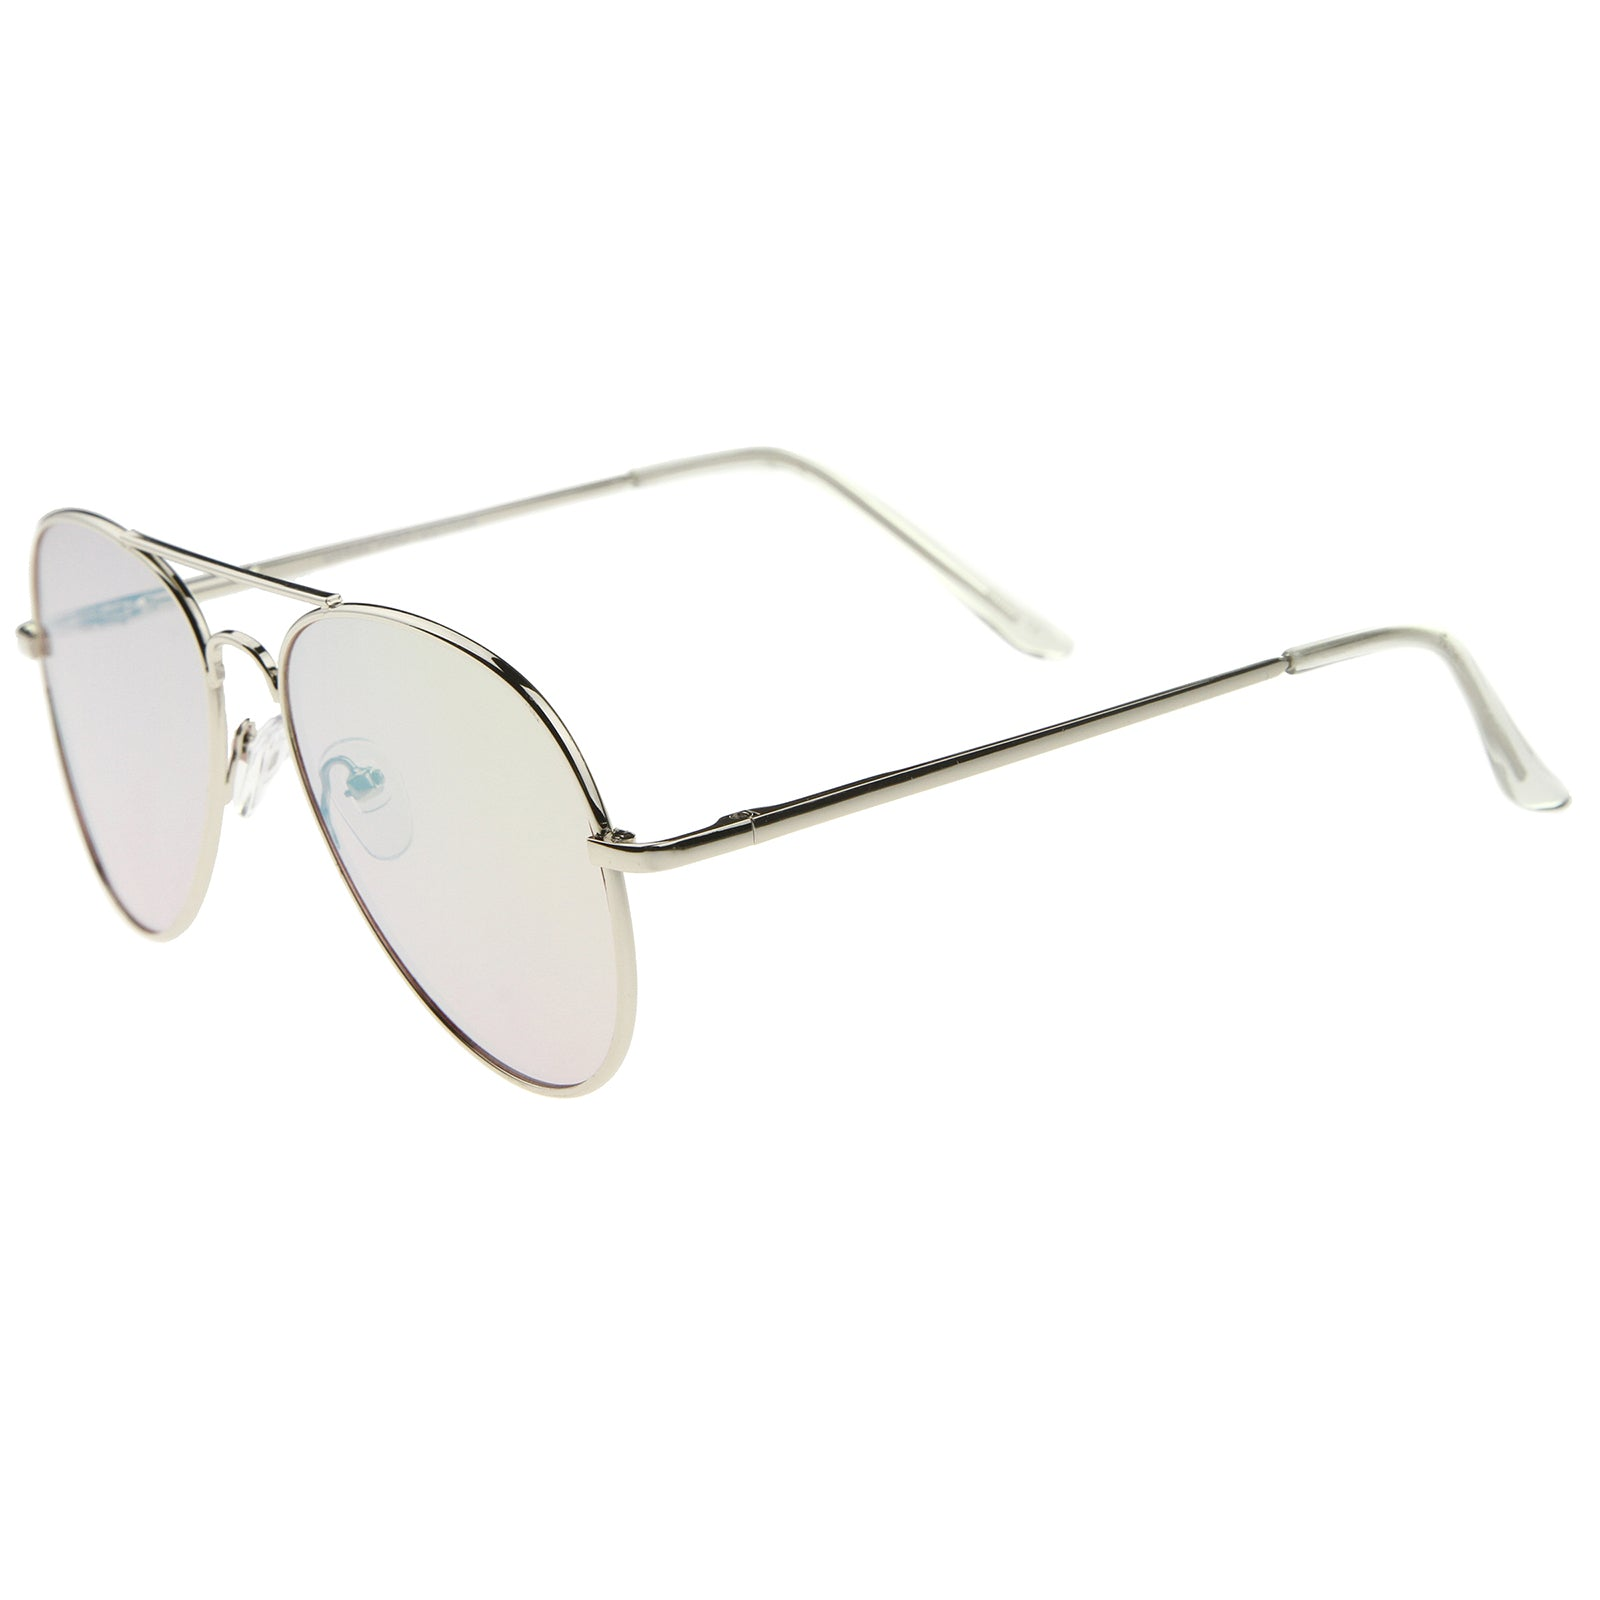 Small Full Metal Color Mirror Teardrop Flat Lens Aviator Sunglasses 56mm - sunglass.la - 3